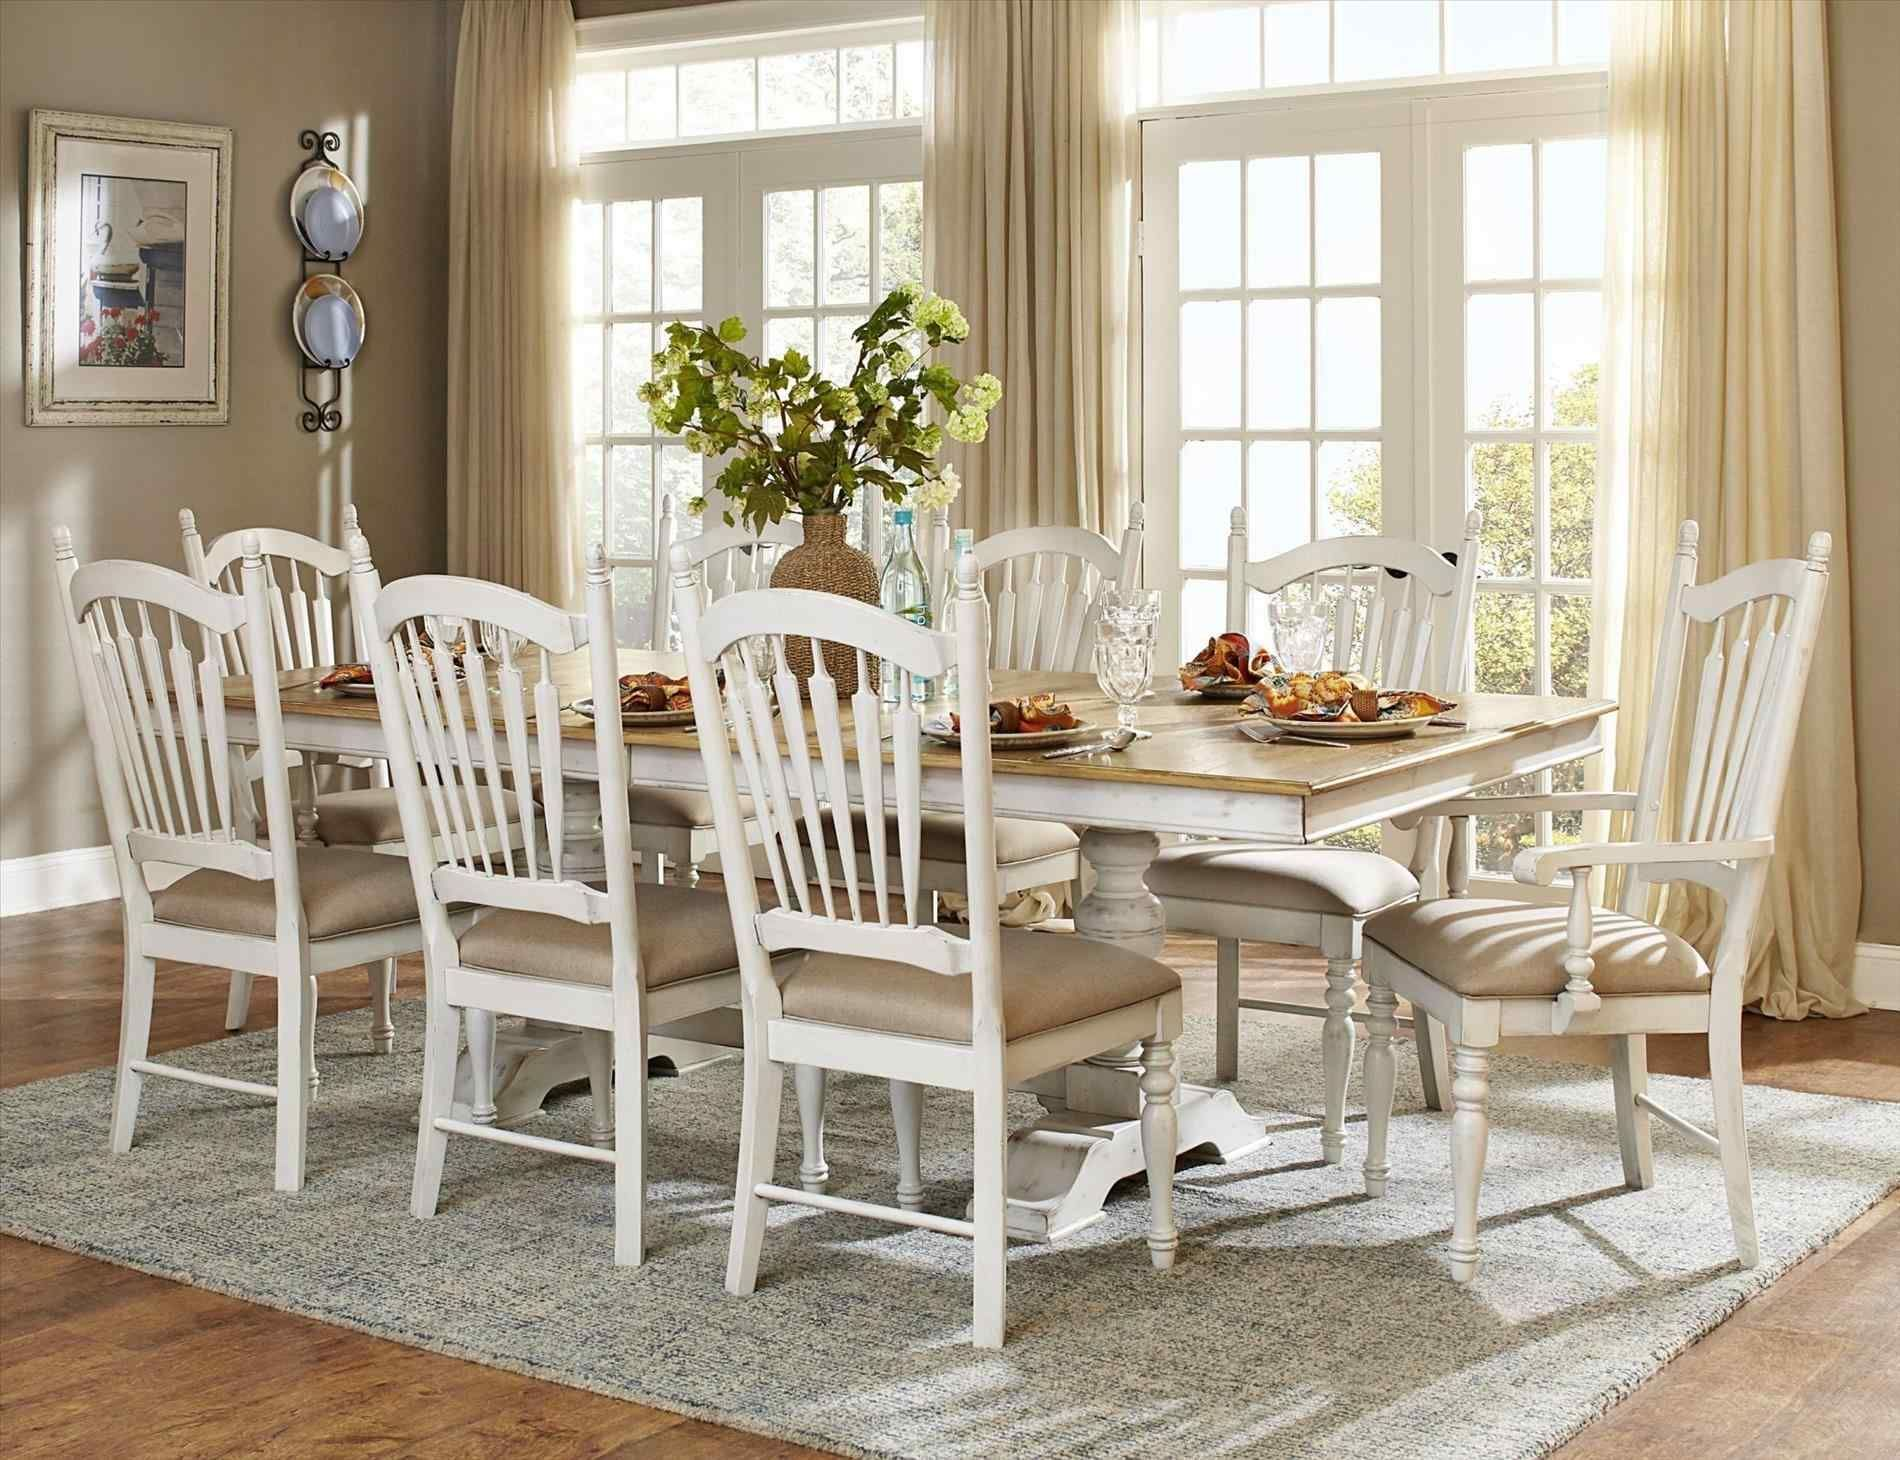 11 Wonderful White Dining Room Table Seats 8 Breakpr Rectangular Dining Room Table White Kitchen Table Set Distressed Dining Table